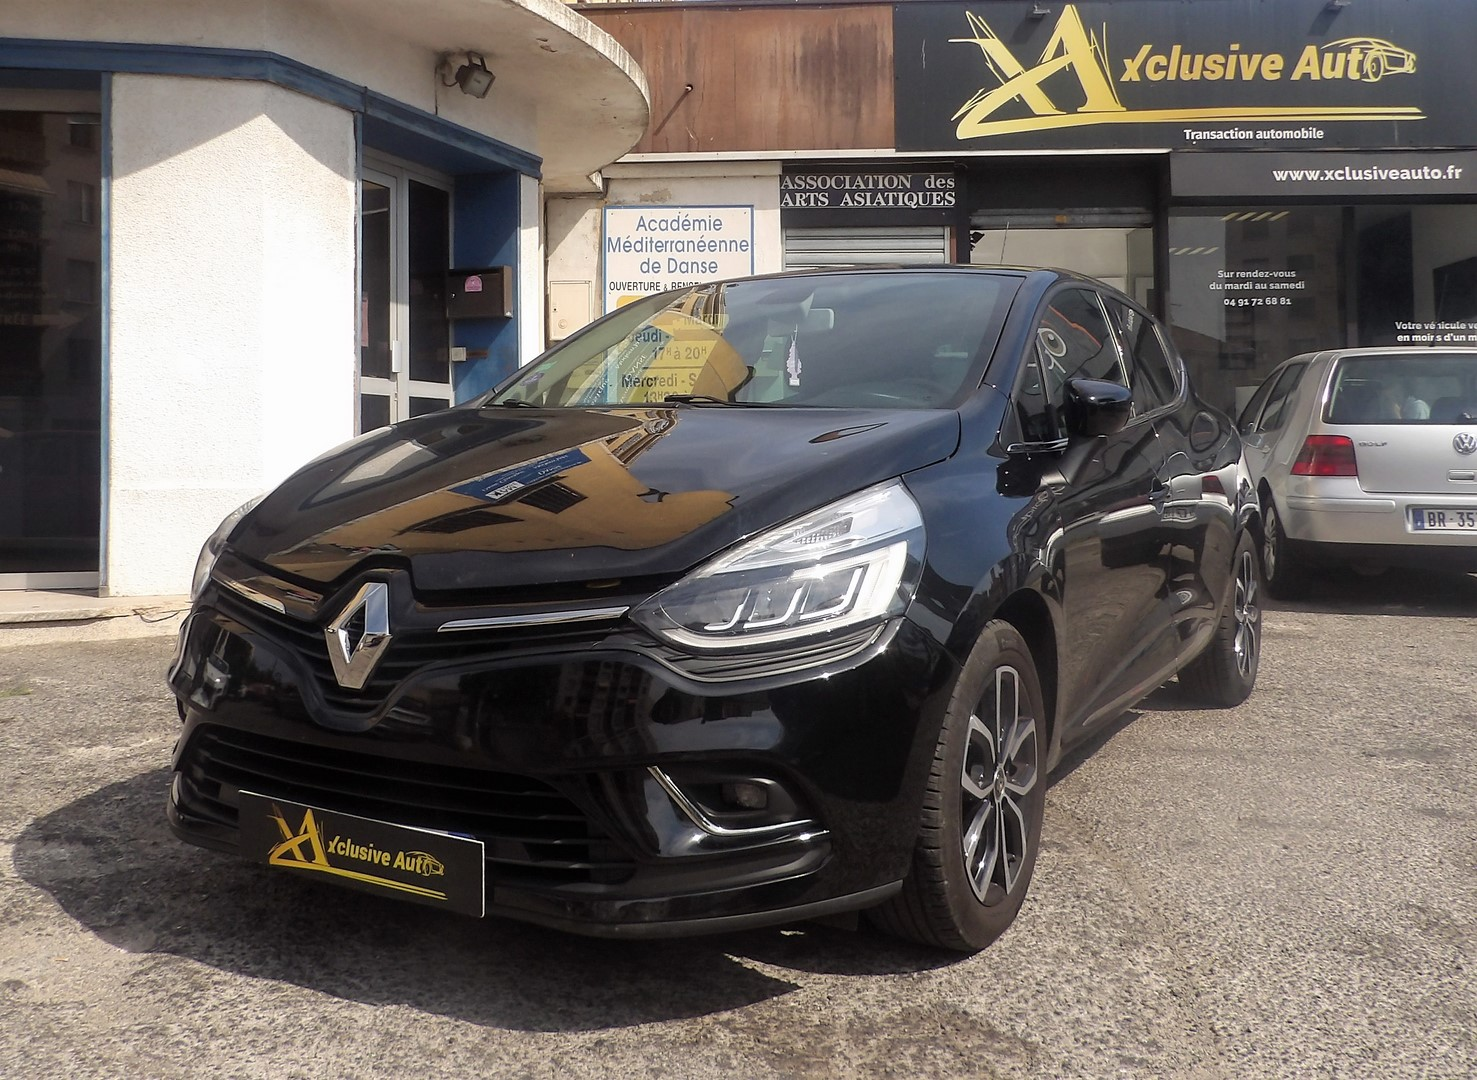 RENAULT CLIO IV (2) 0.9 TCE 90 ENERGY INTENS